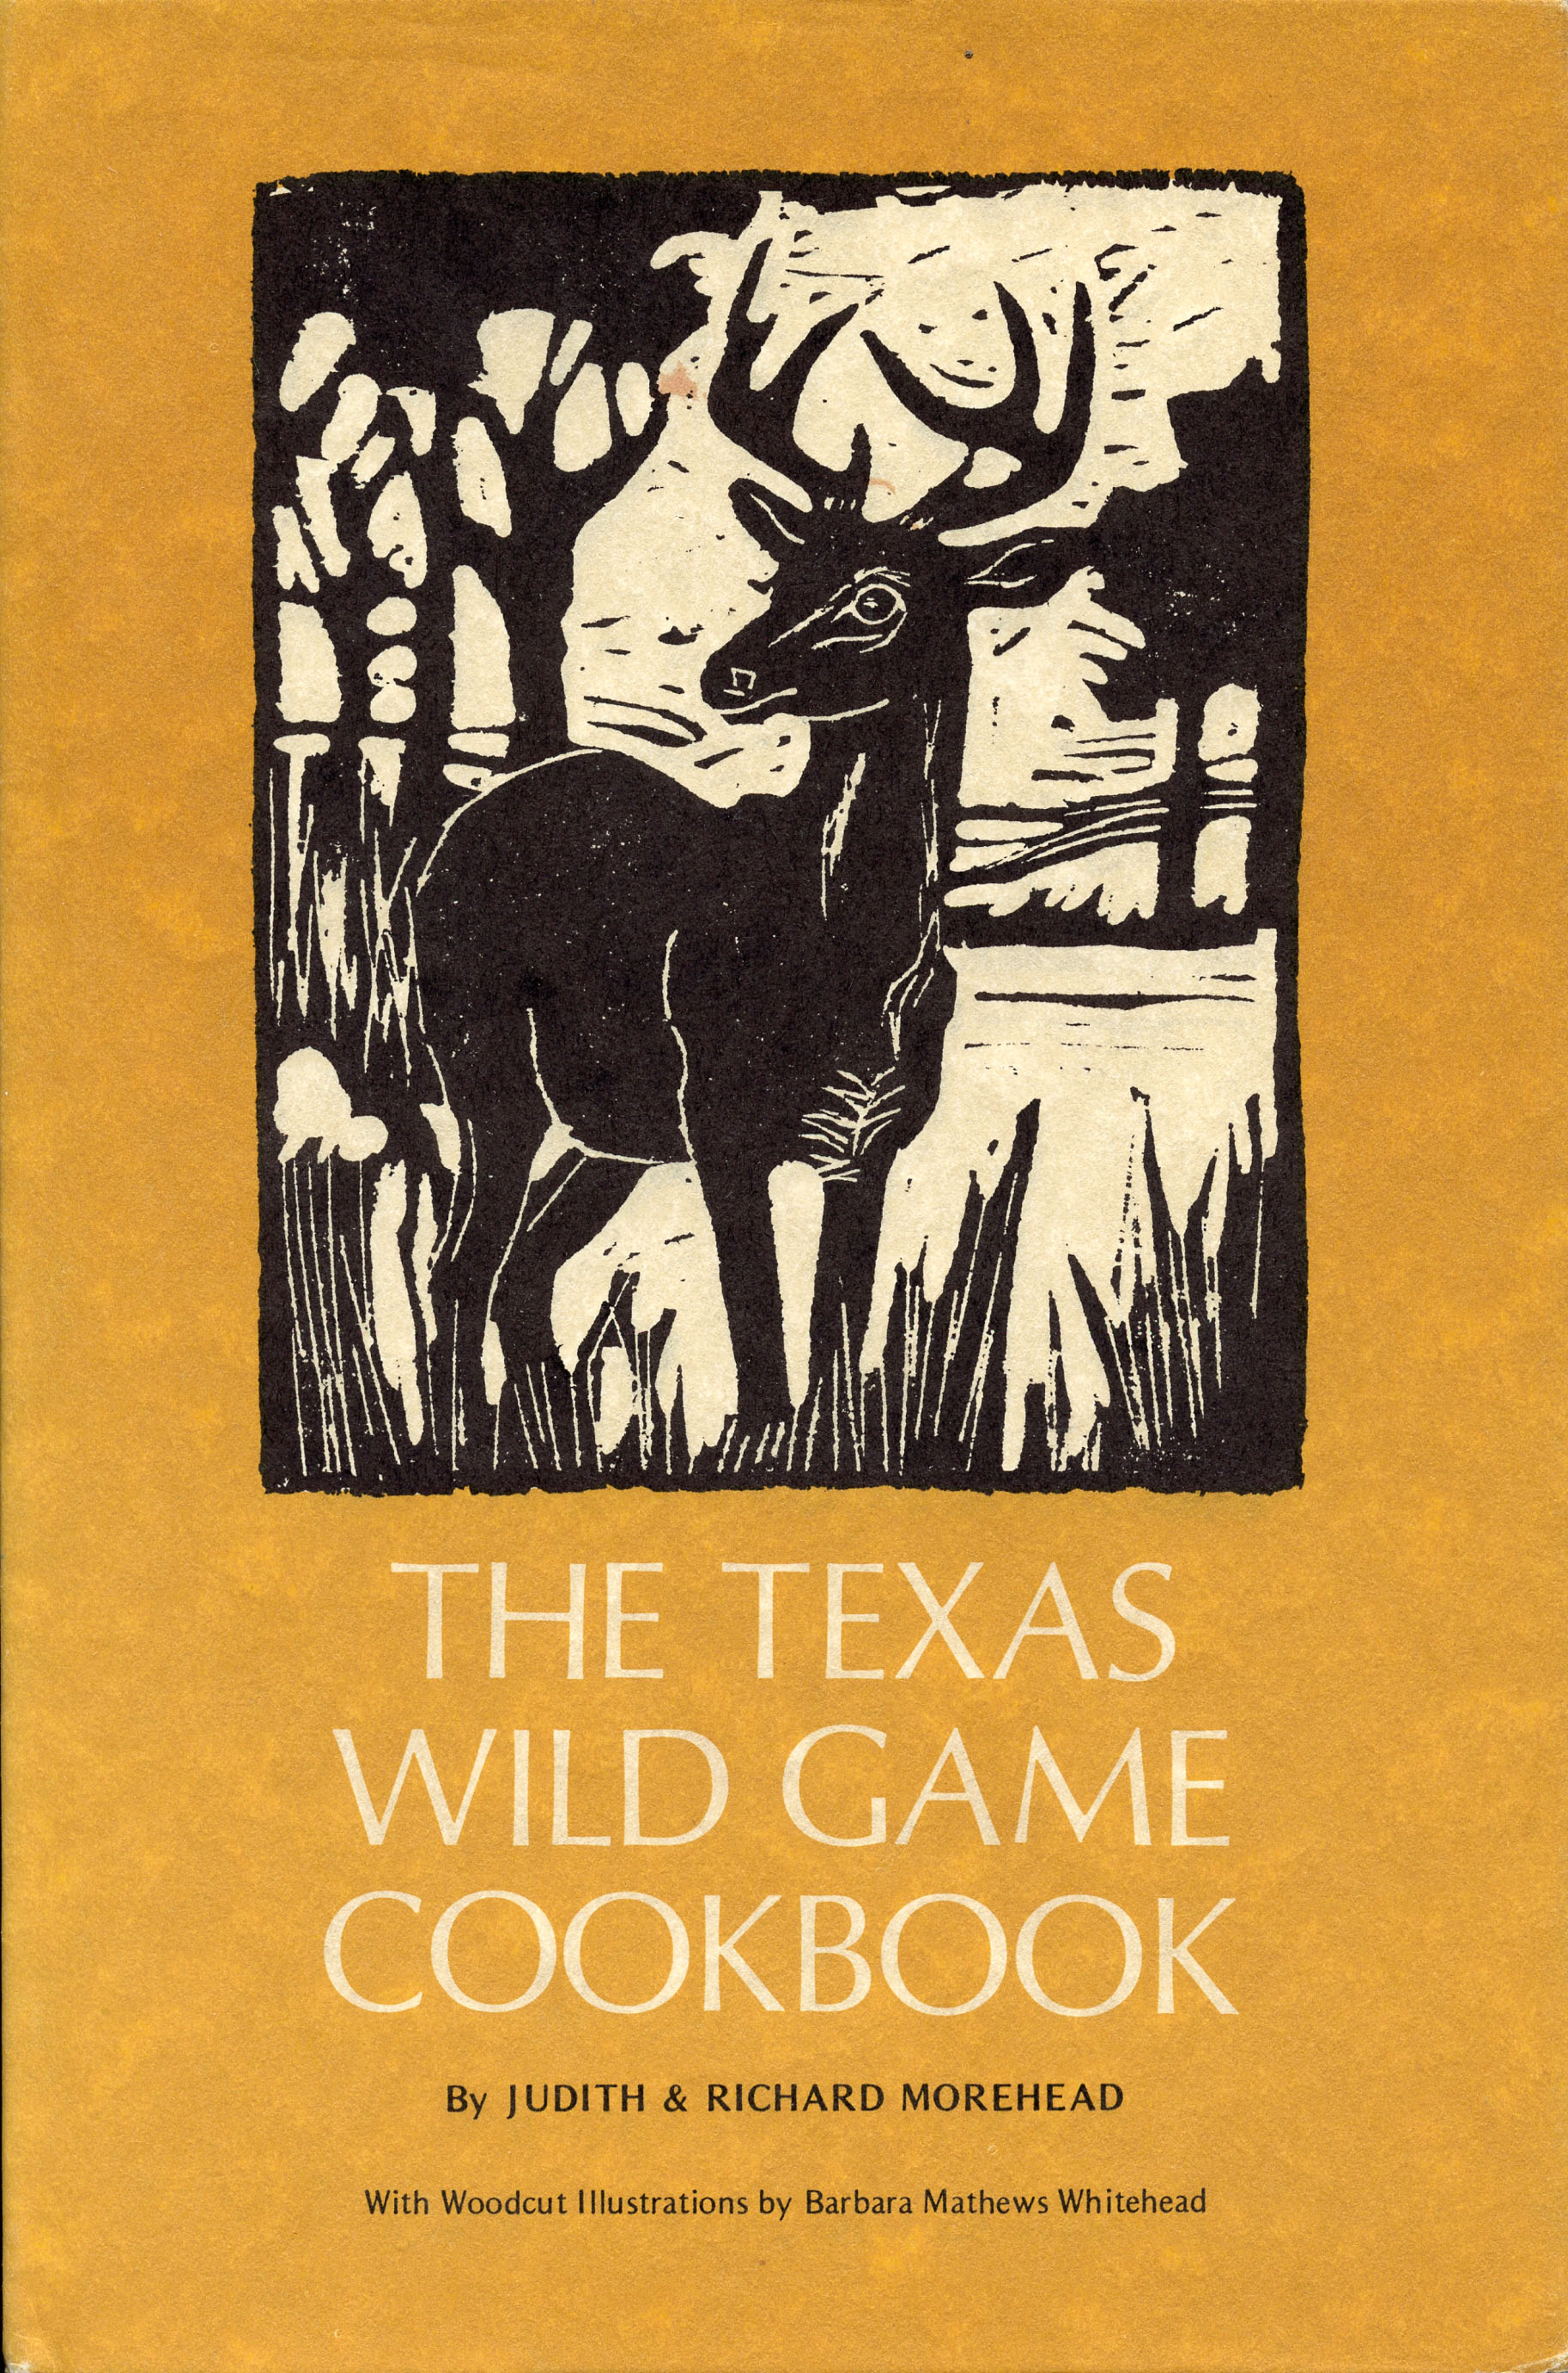 Texas Wild Game Cookbook Teale 413